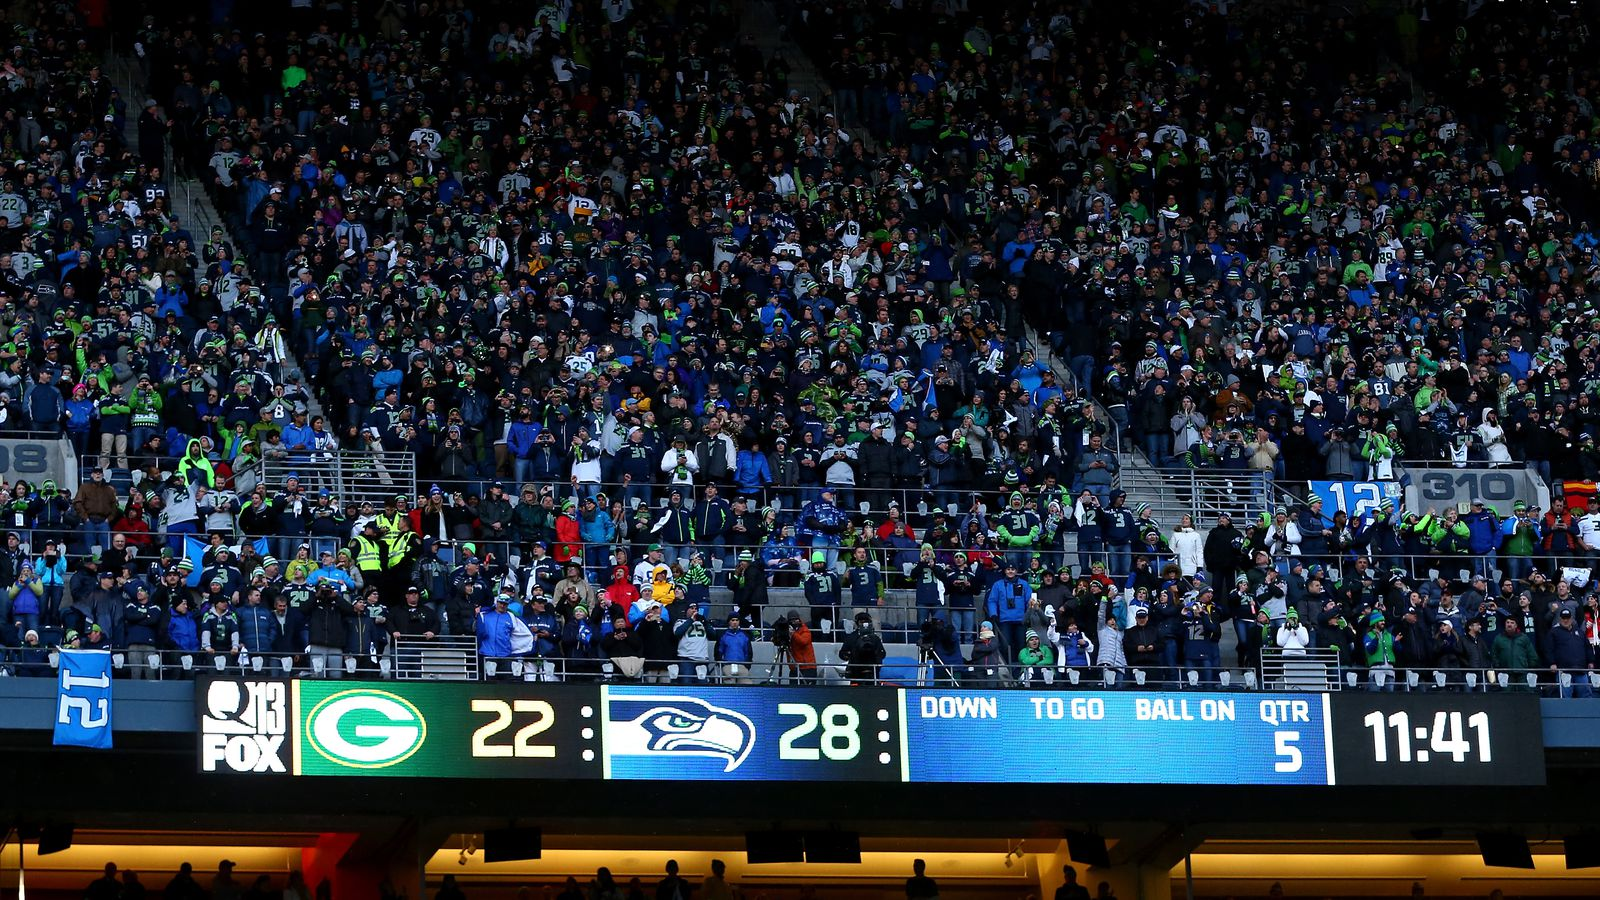 boxing money line nfc championship game 2015 stats